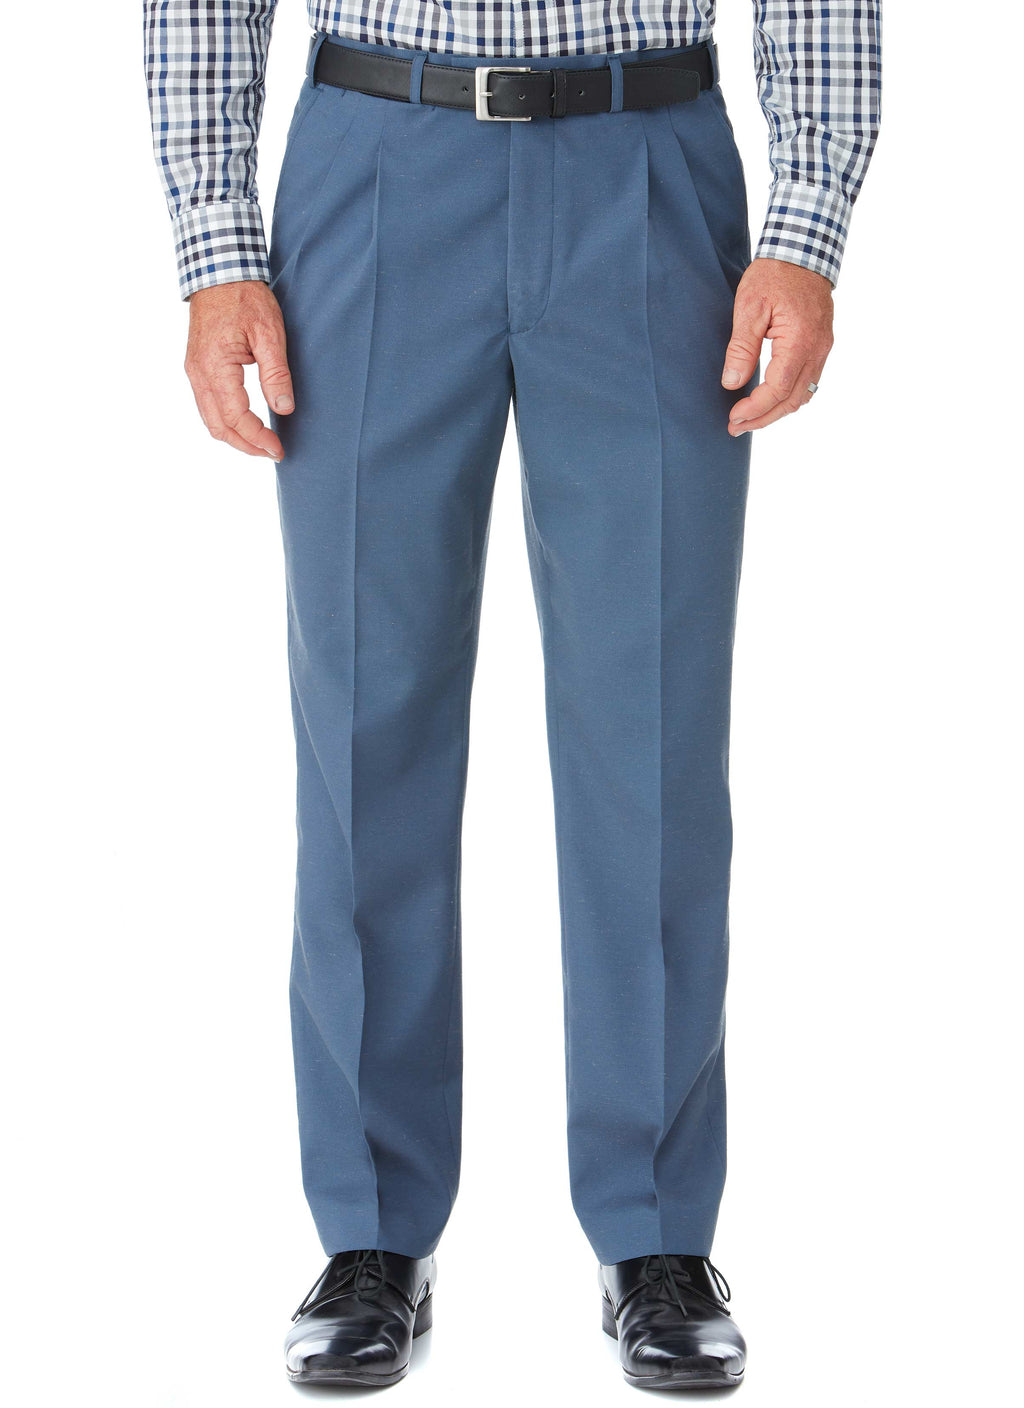 GLENELG PLEATED TROUSER